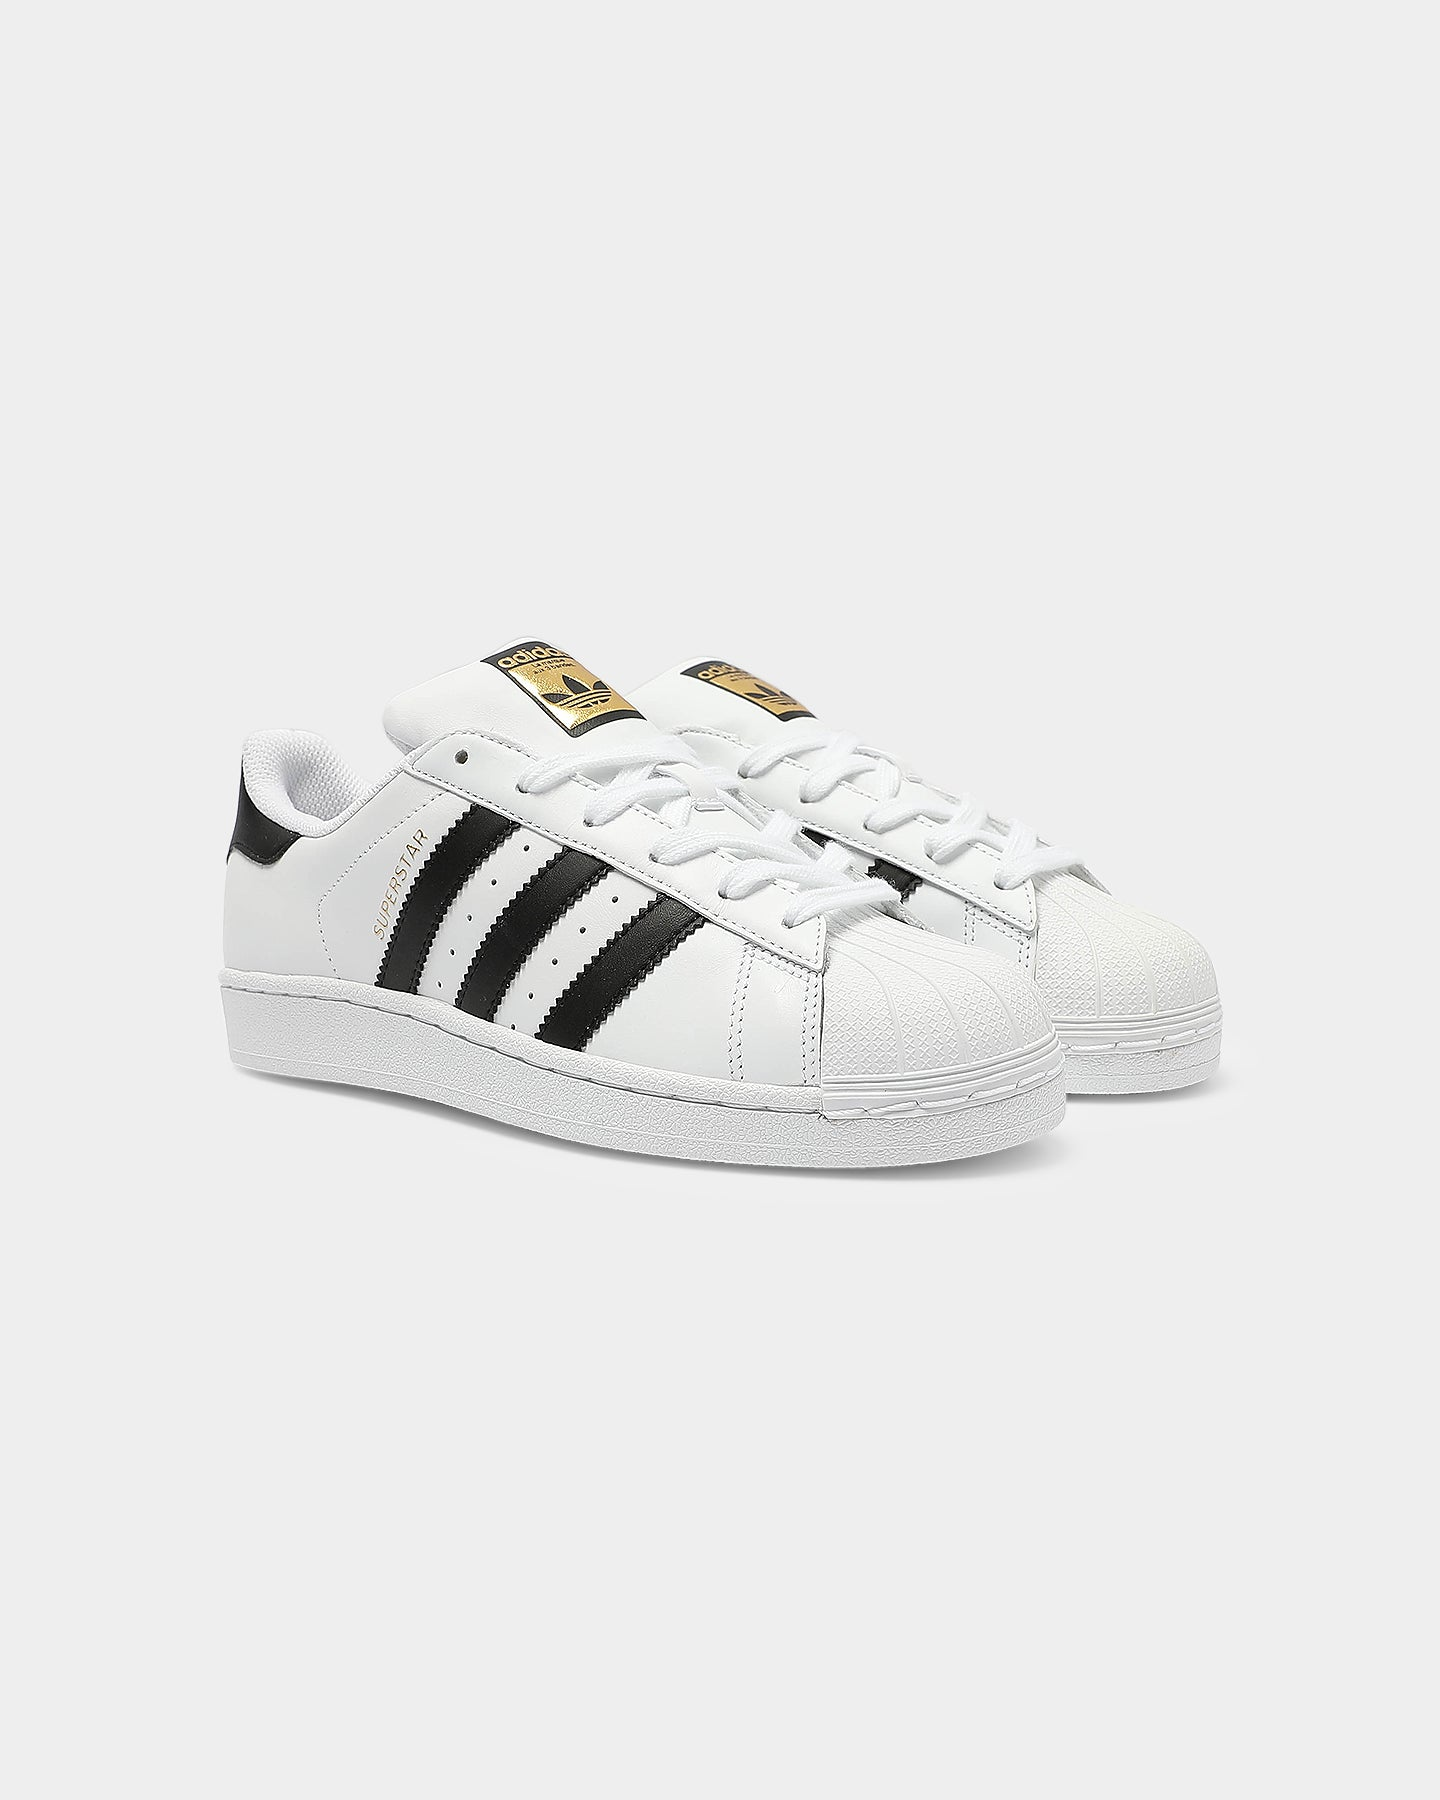 Adidas Superstar Camo Black White Youth Low Top Trainers